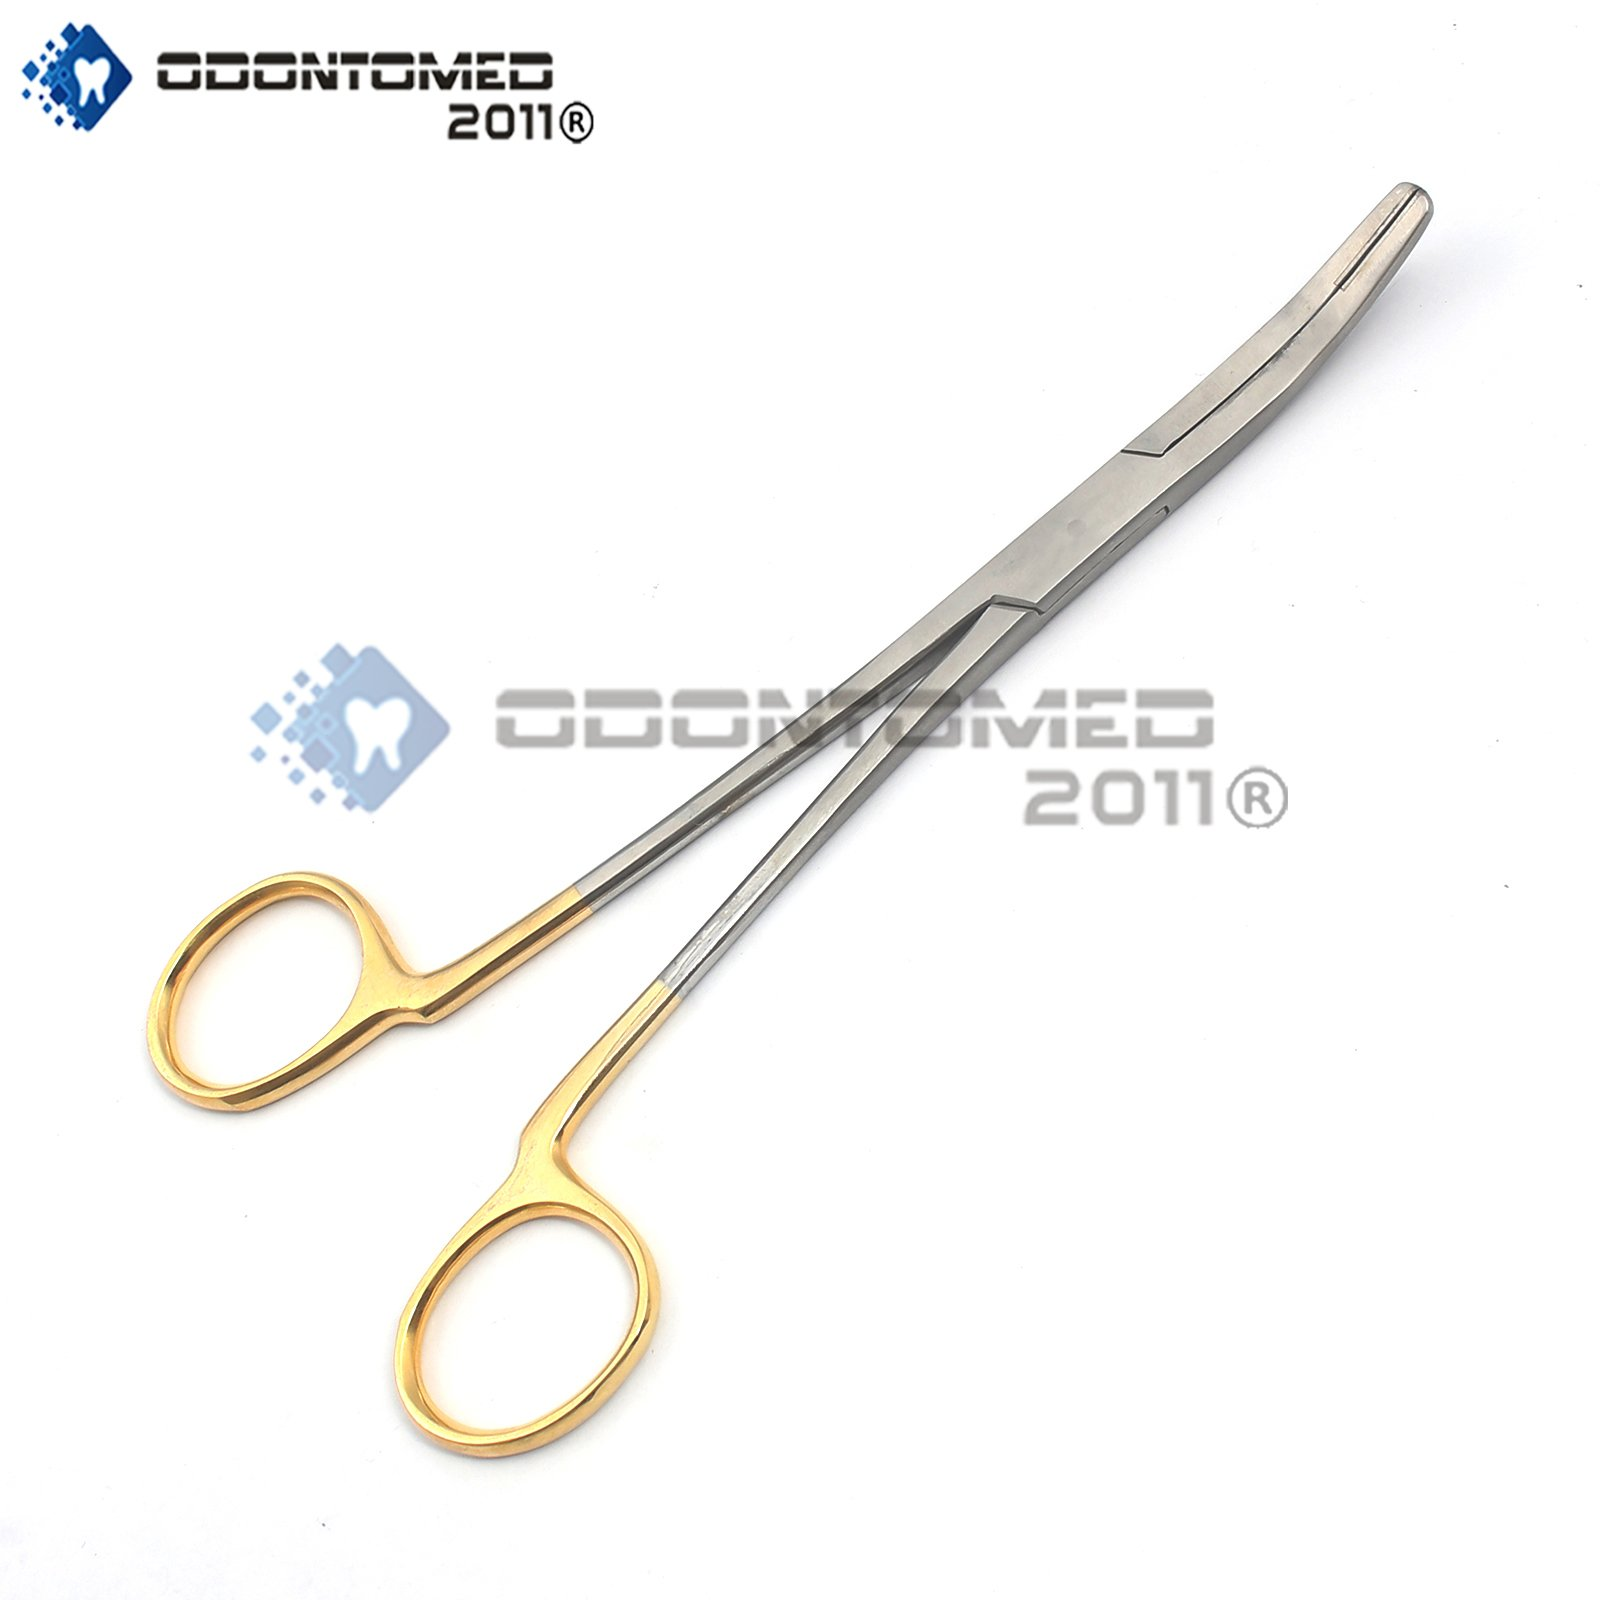 OdontoMed2011® WYNMAN CROWN GRIPPER T/C 6.5'' REMOVER DENTAL FORCEPS UPGRADED INSTRUMENTS ODM